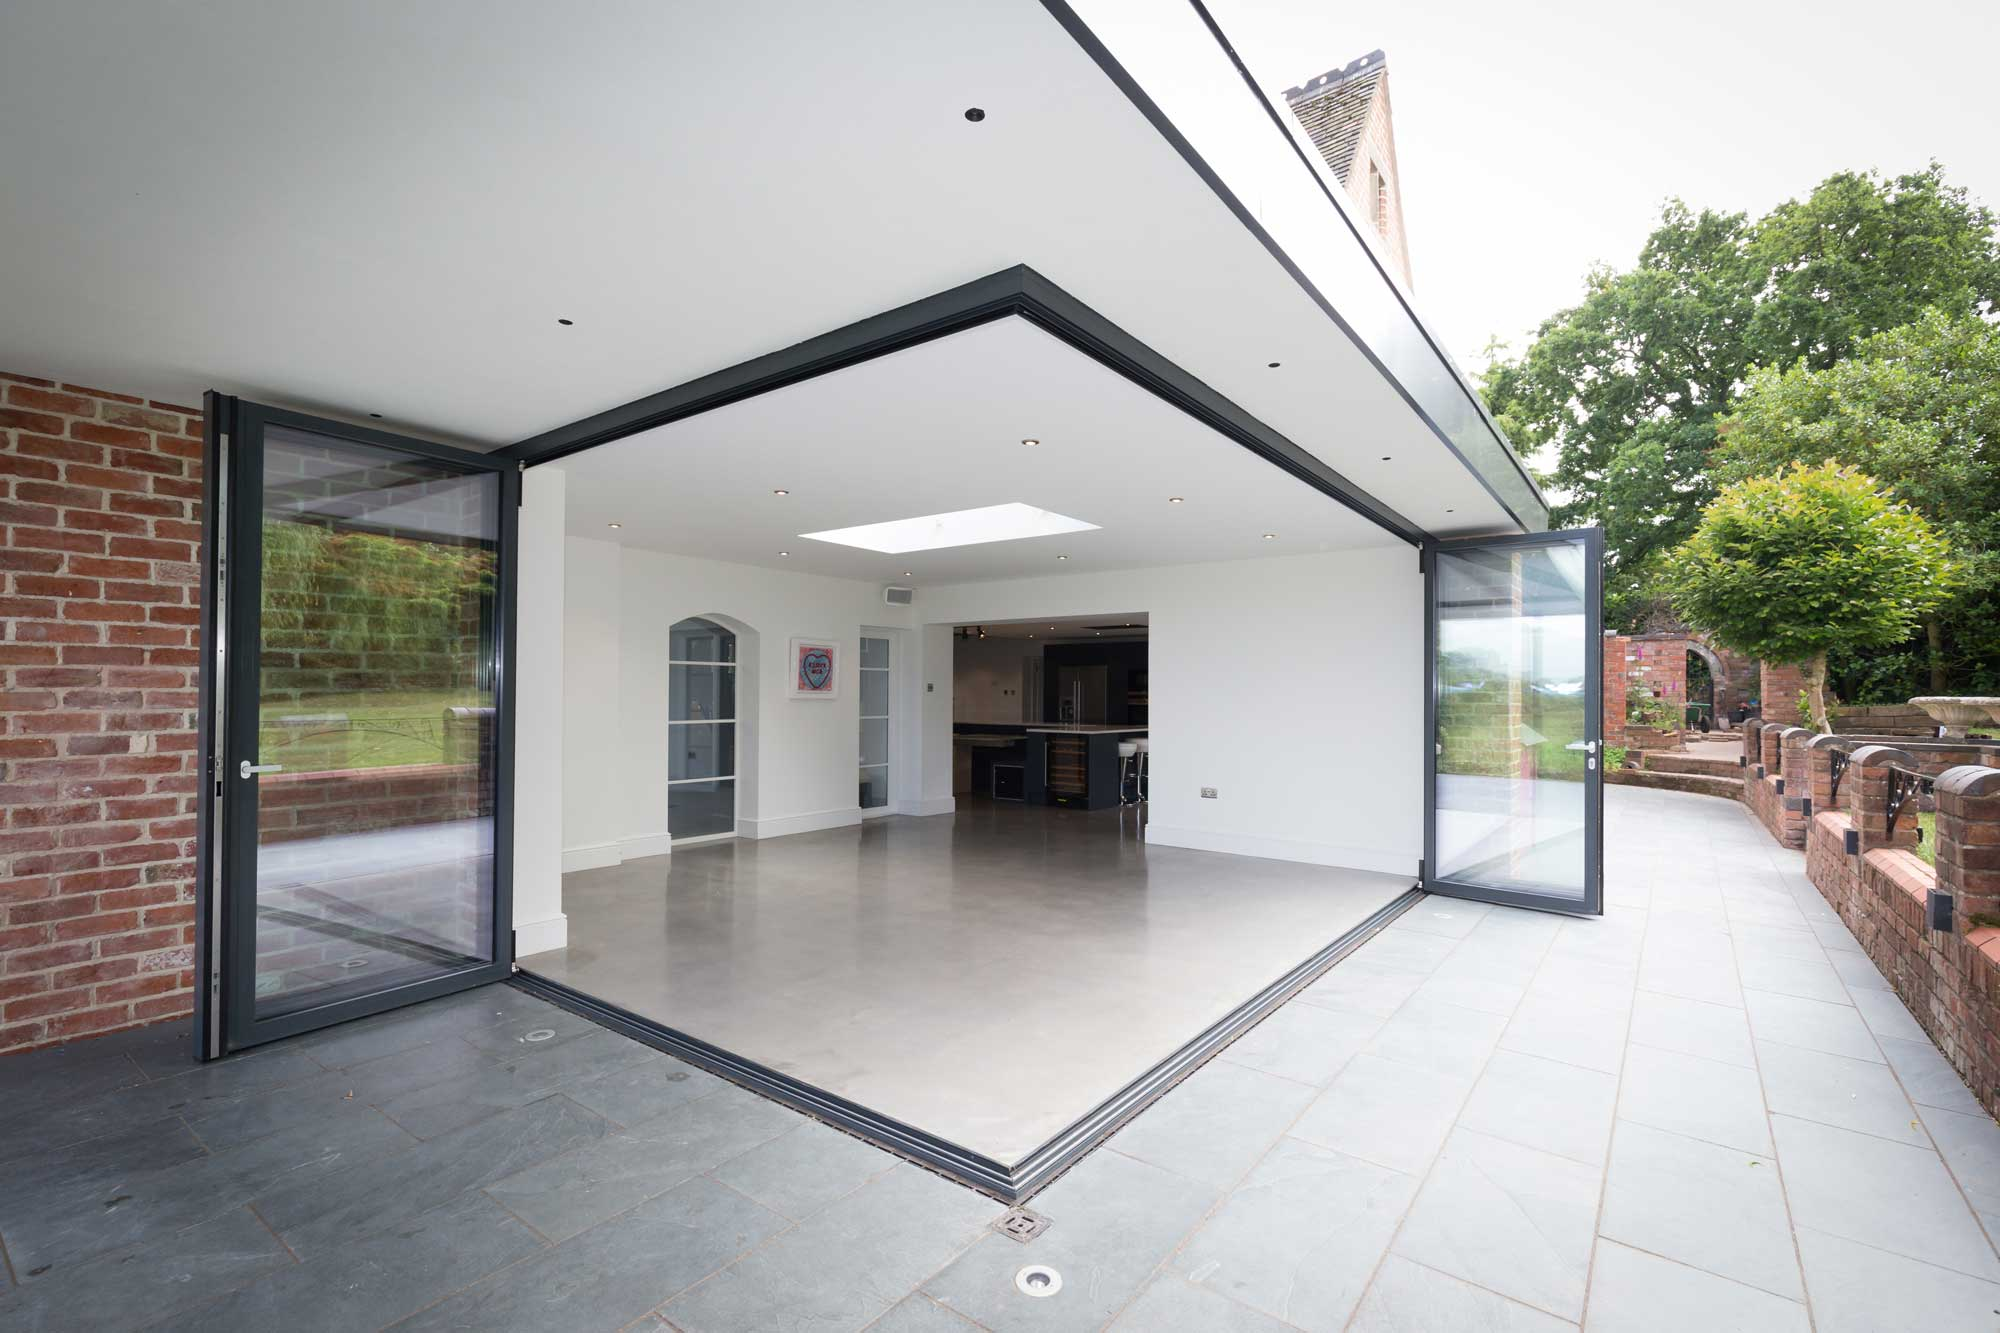 bi-folding doors with cornerless opening and seamless level threshold